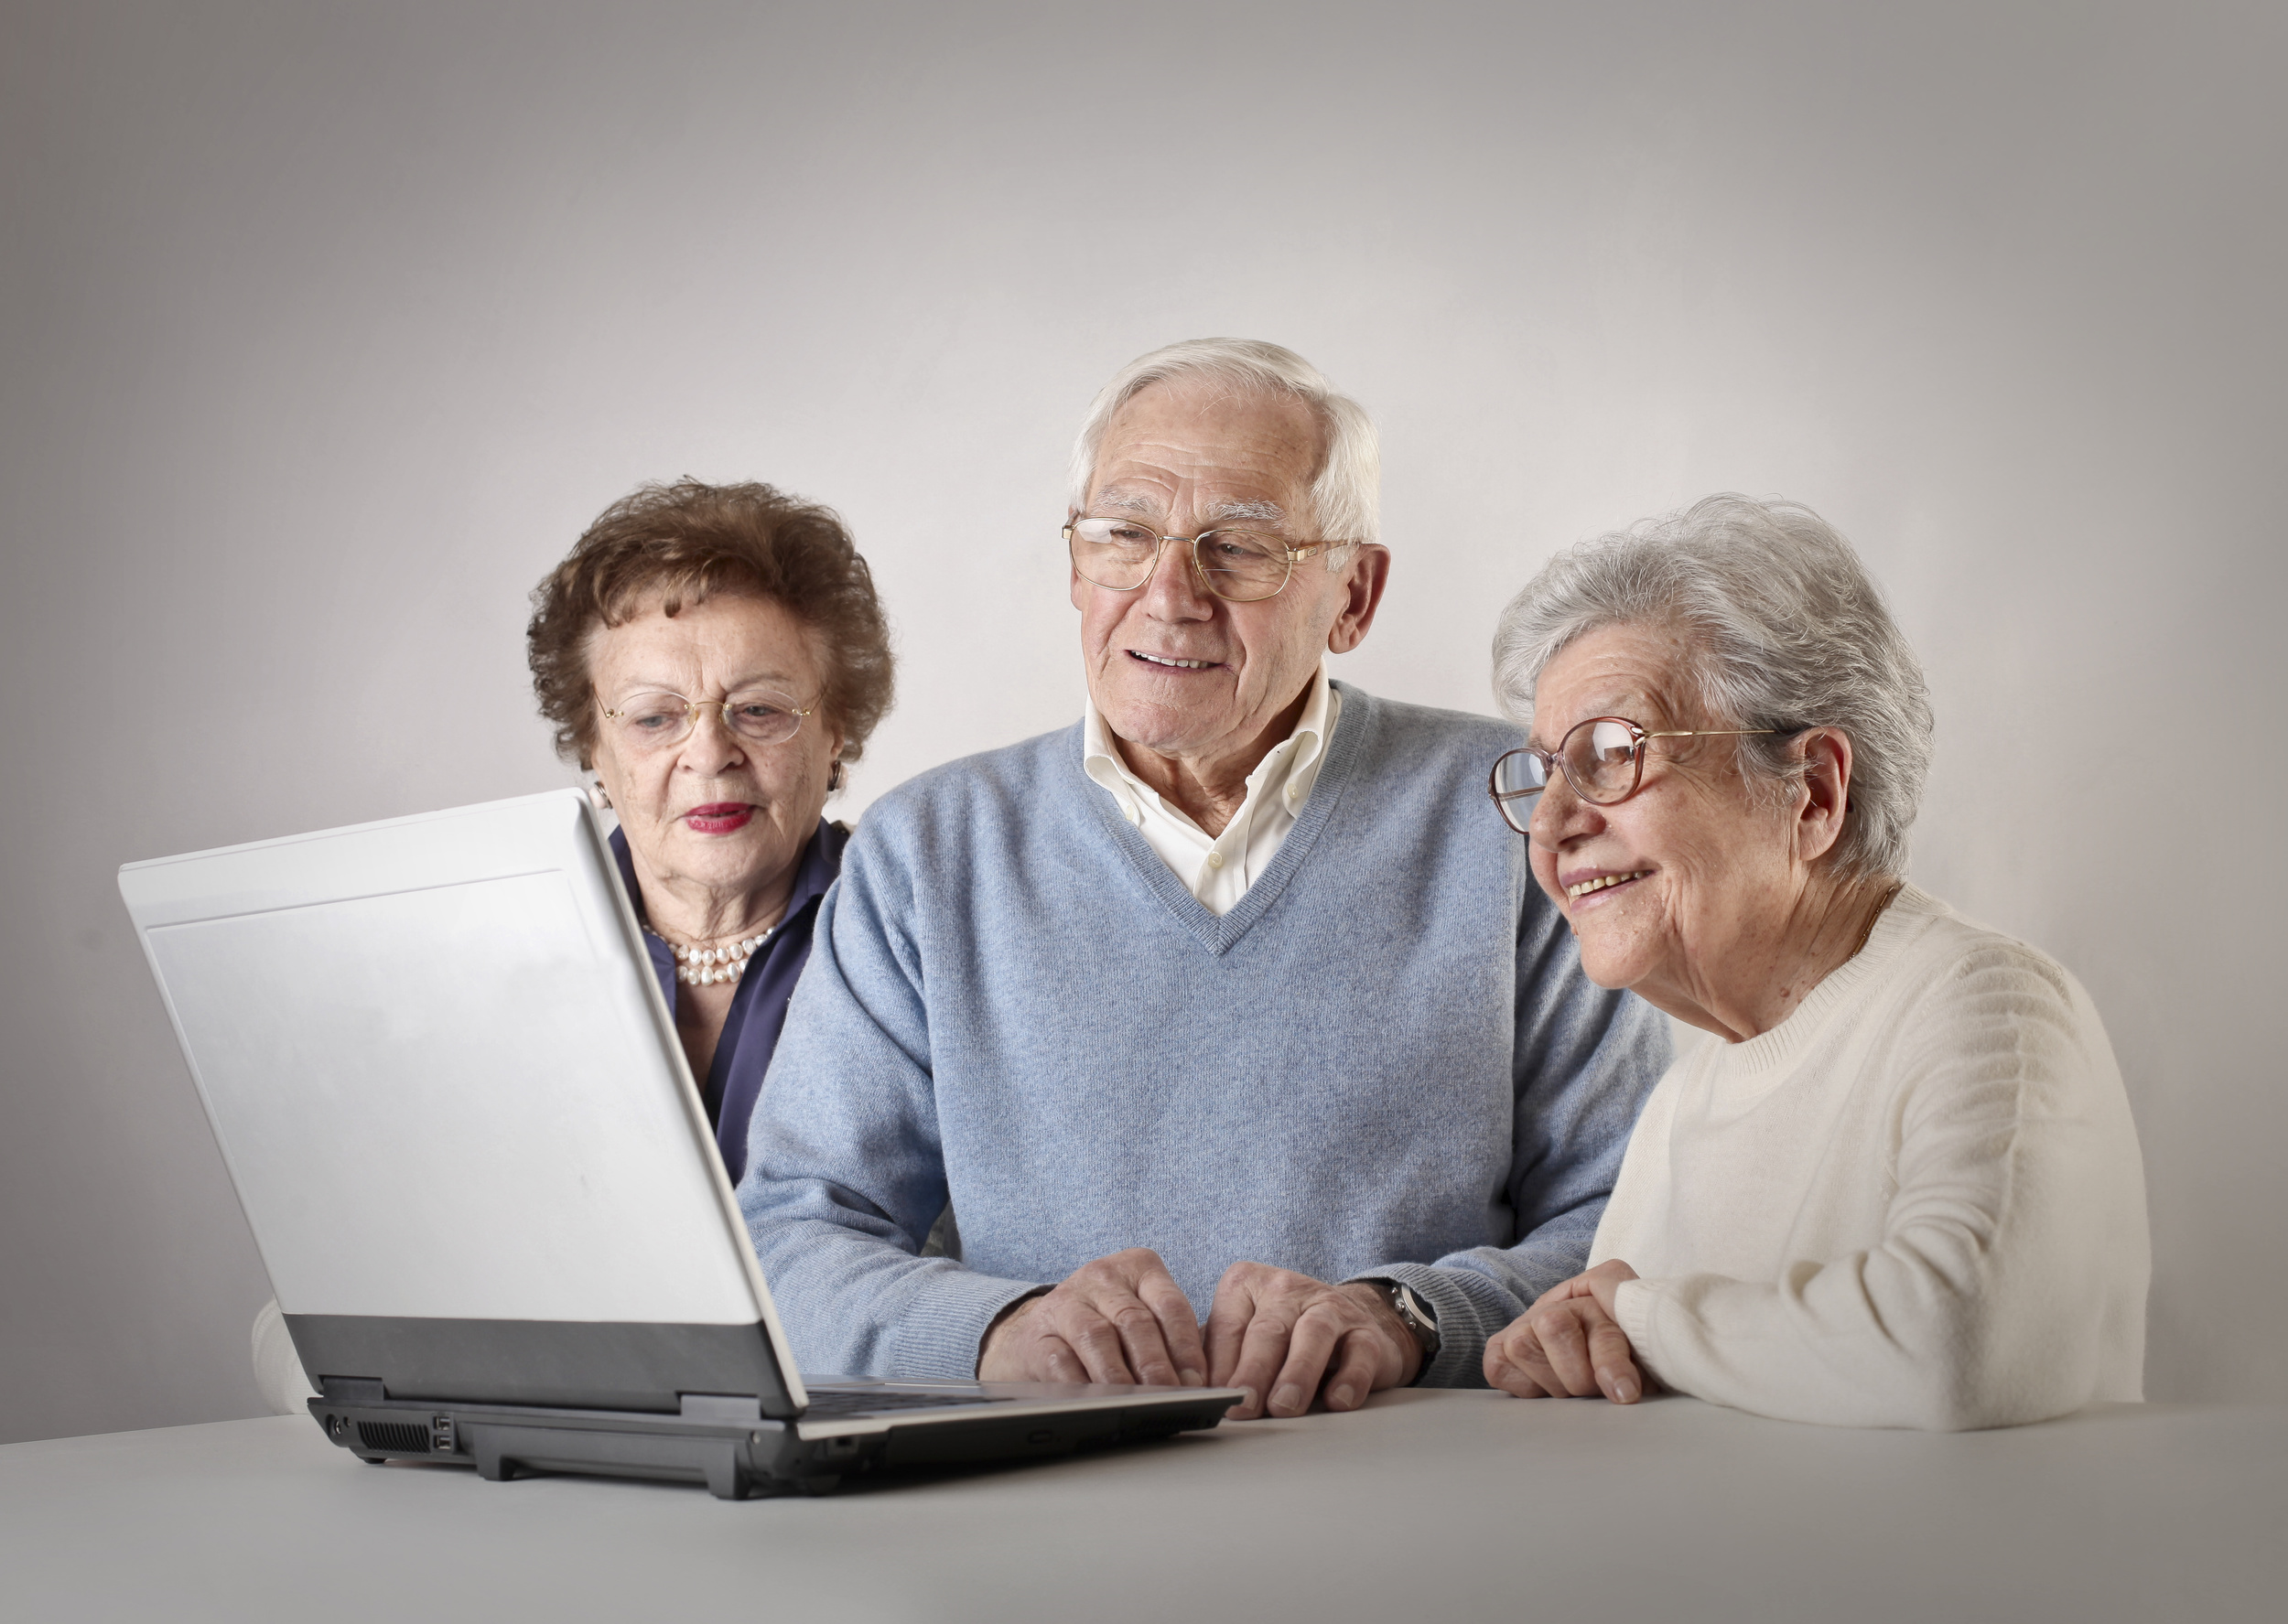 RehaCom is suitable for all ages